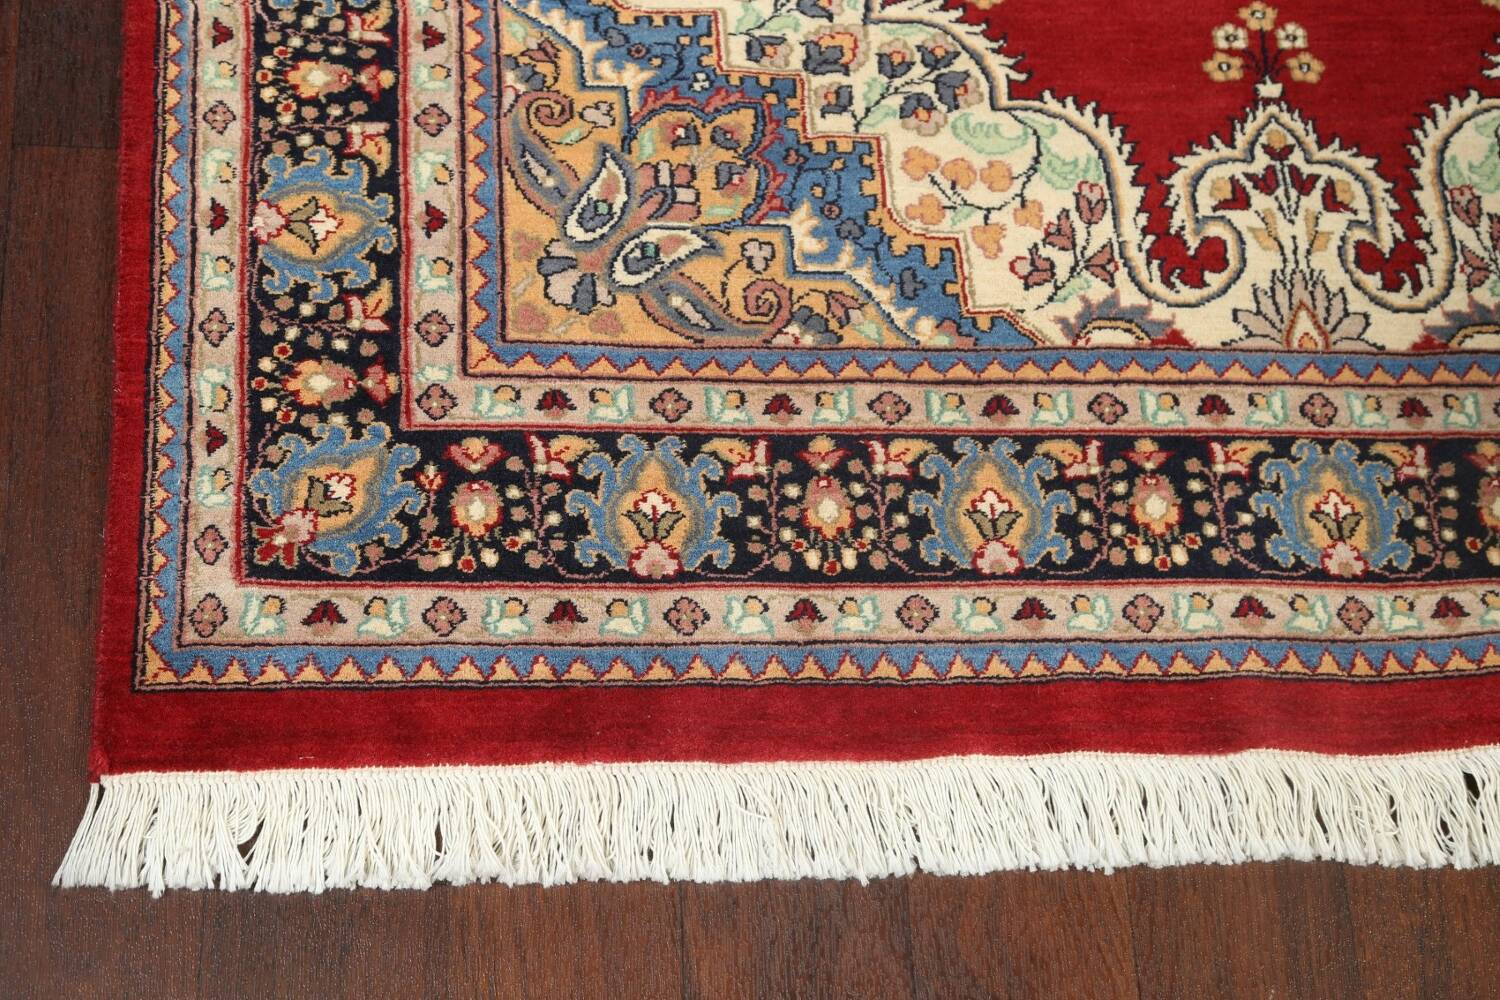 100% Vegetable Dye Red Tabriz Oriental Area Rug 5x7 image 6